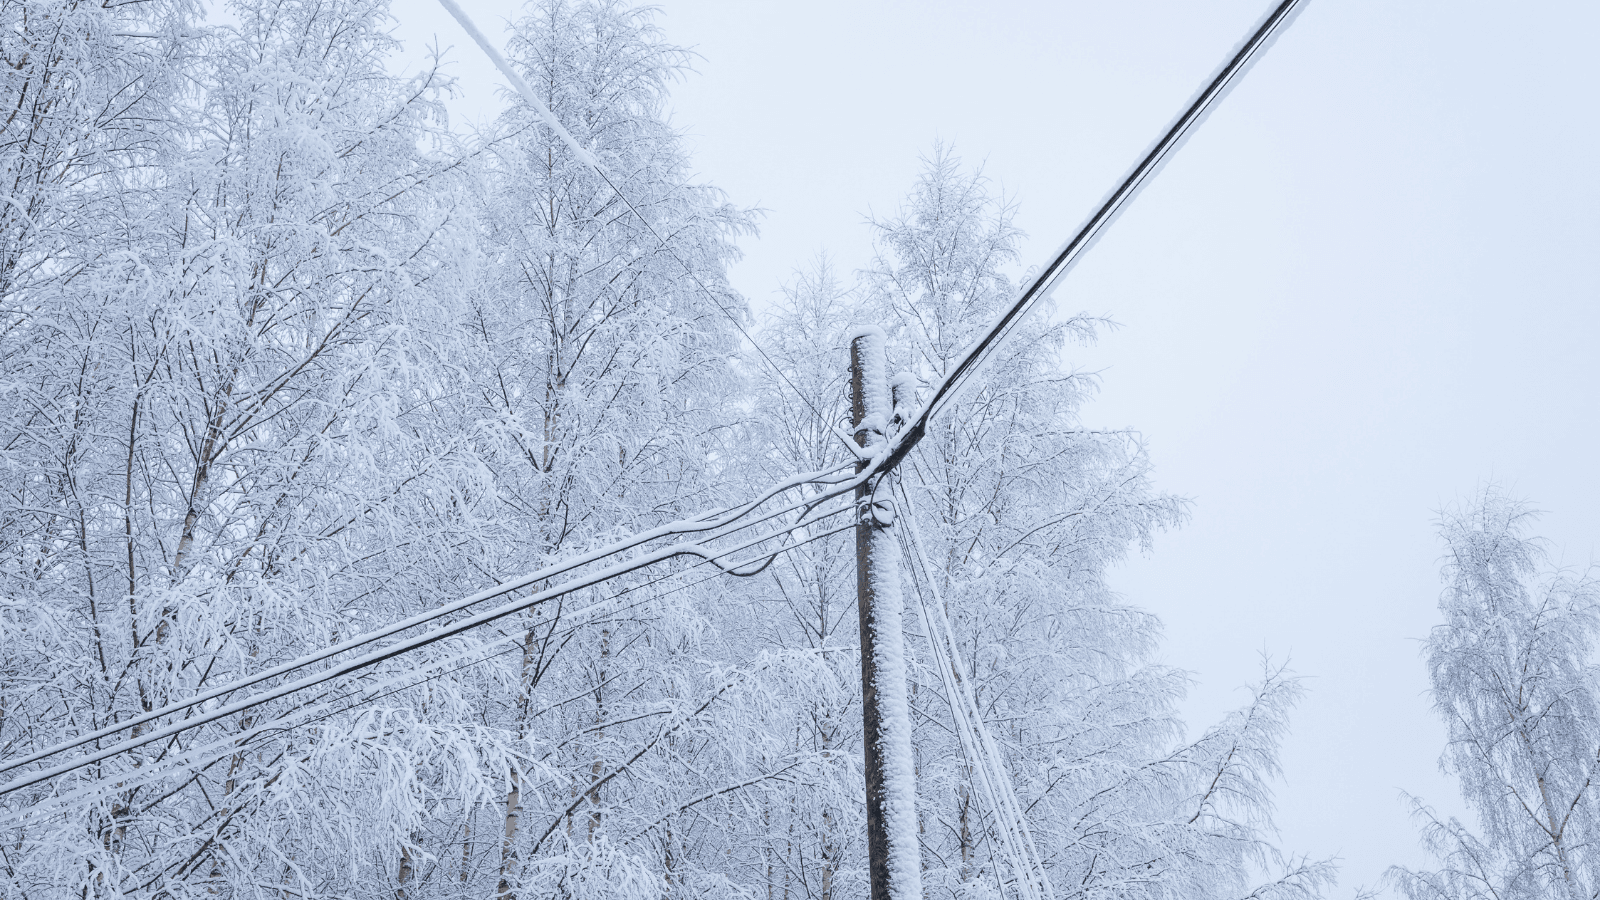 Power lines and snowy trees